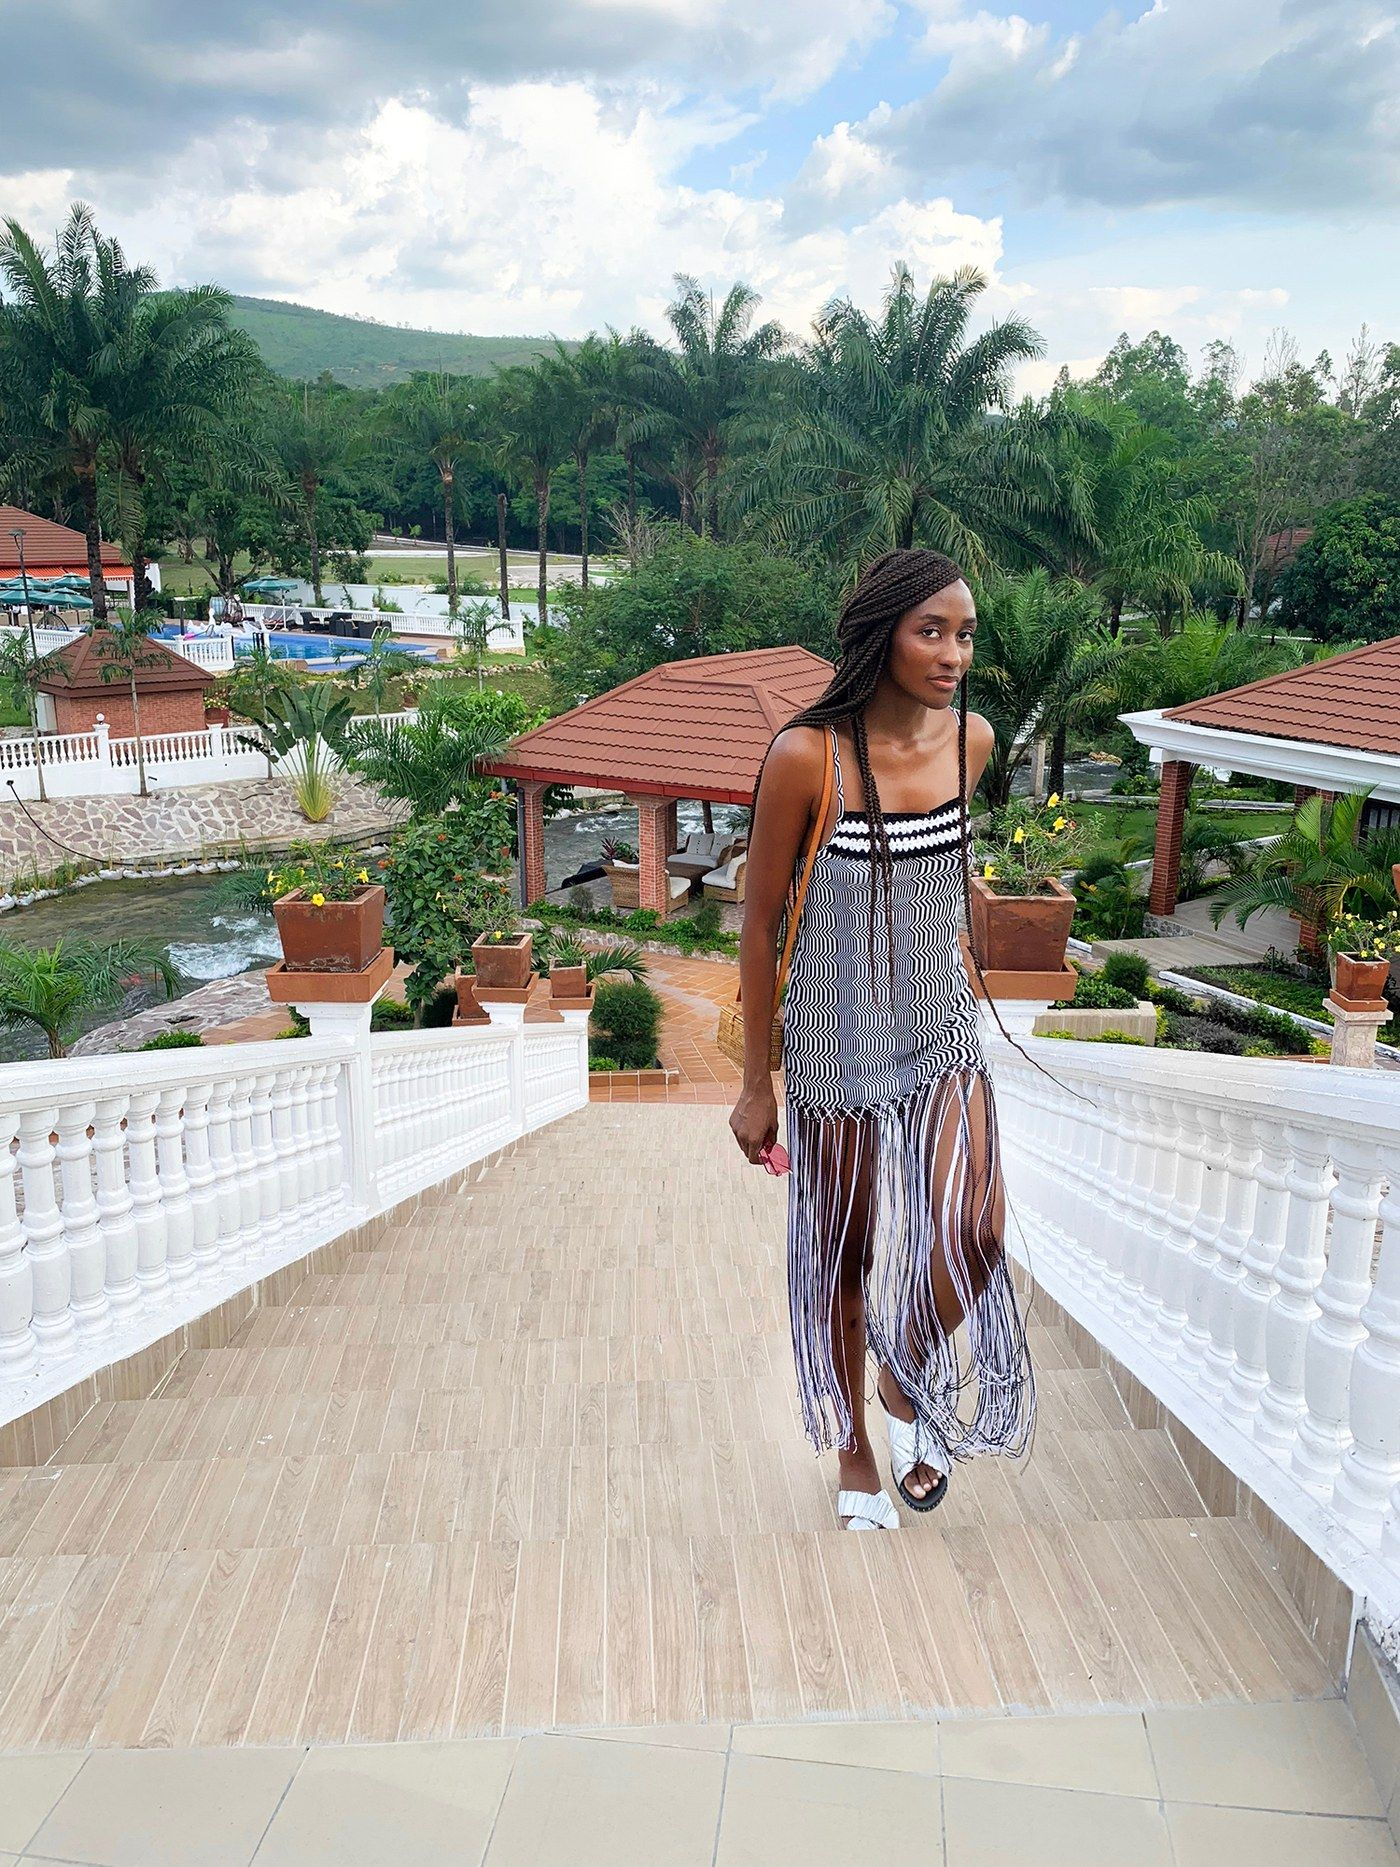 Cool Girl Stylist Peju Famojure S Guide To Shopping And Relaxing In Republic Of Congo Cool Girl Girl Stylists